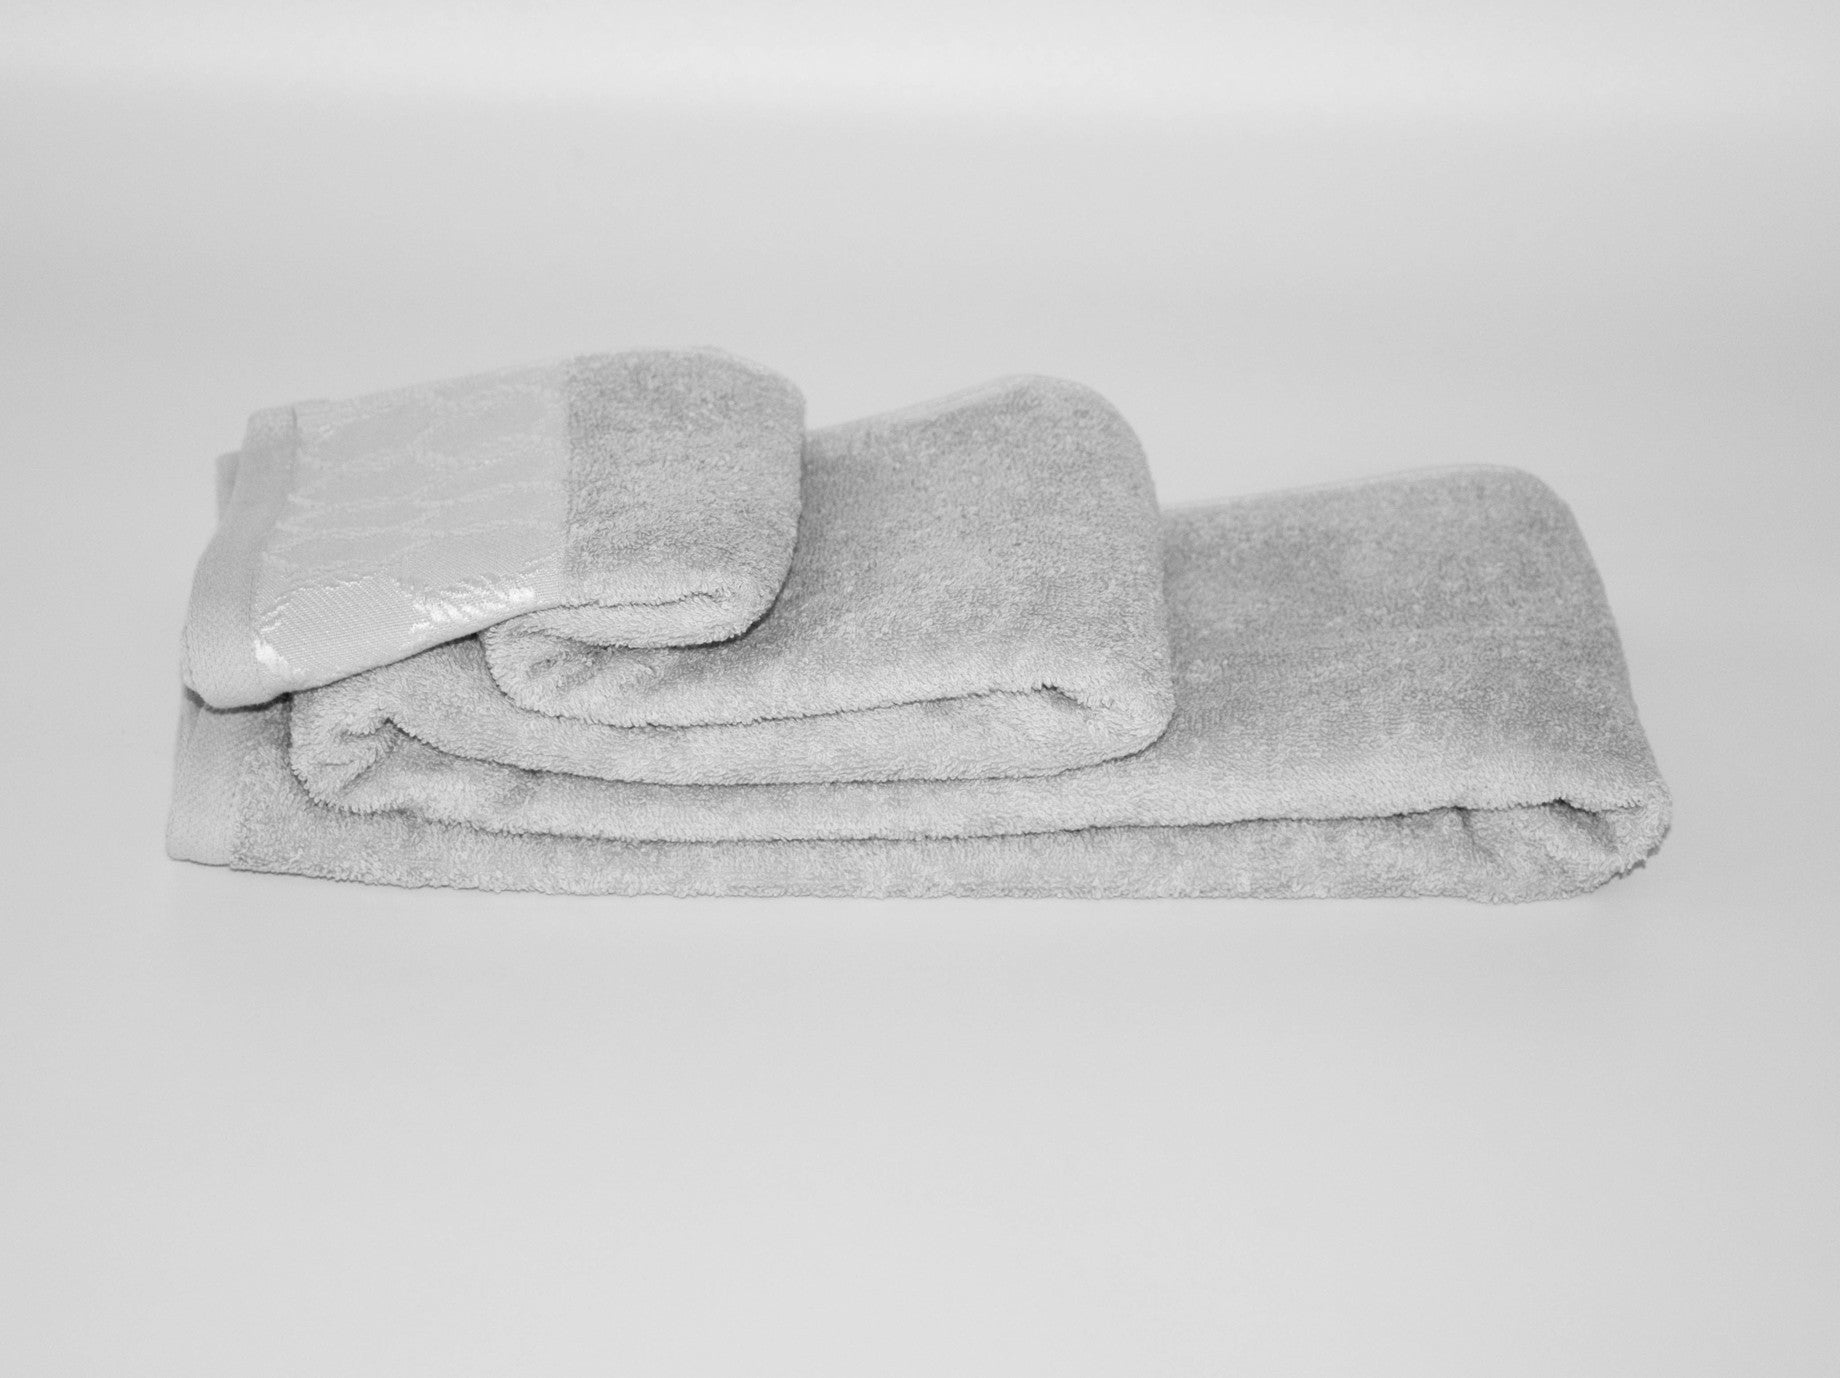 70x140cm CHAIN BATH TOWEL GREY